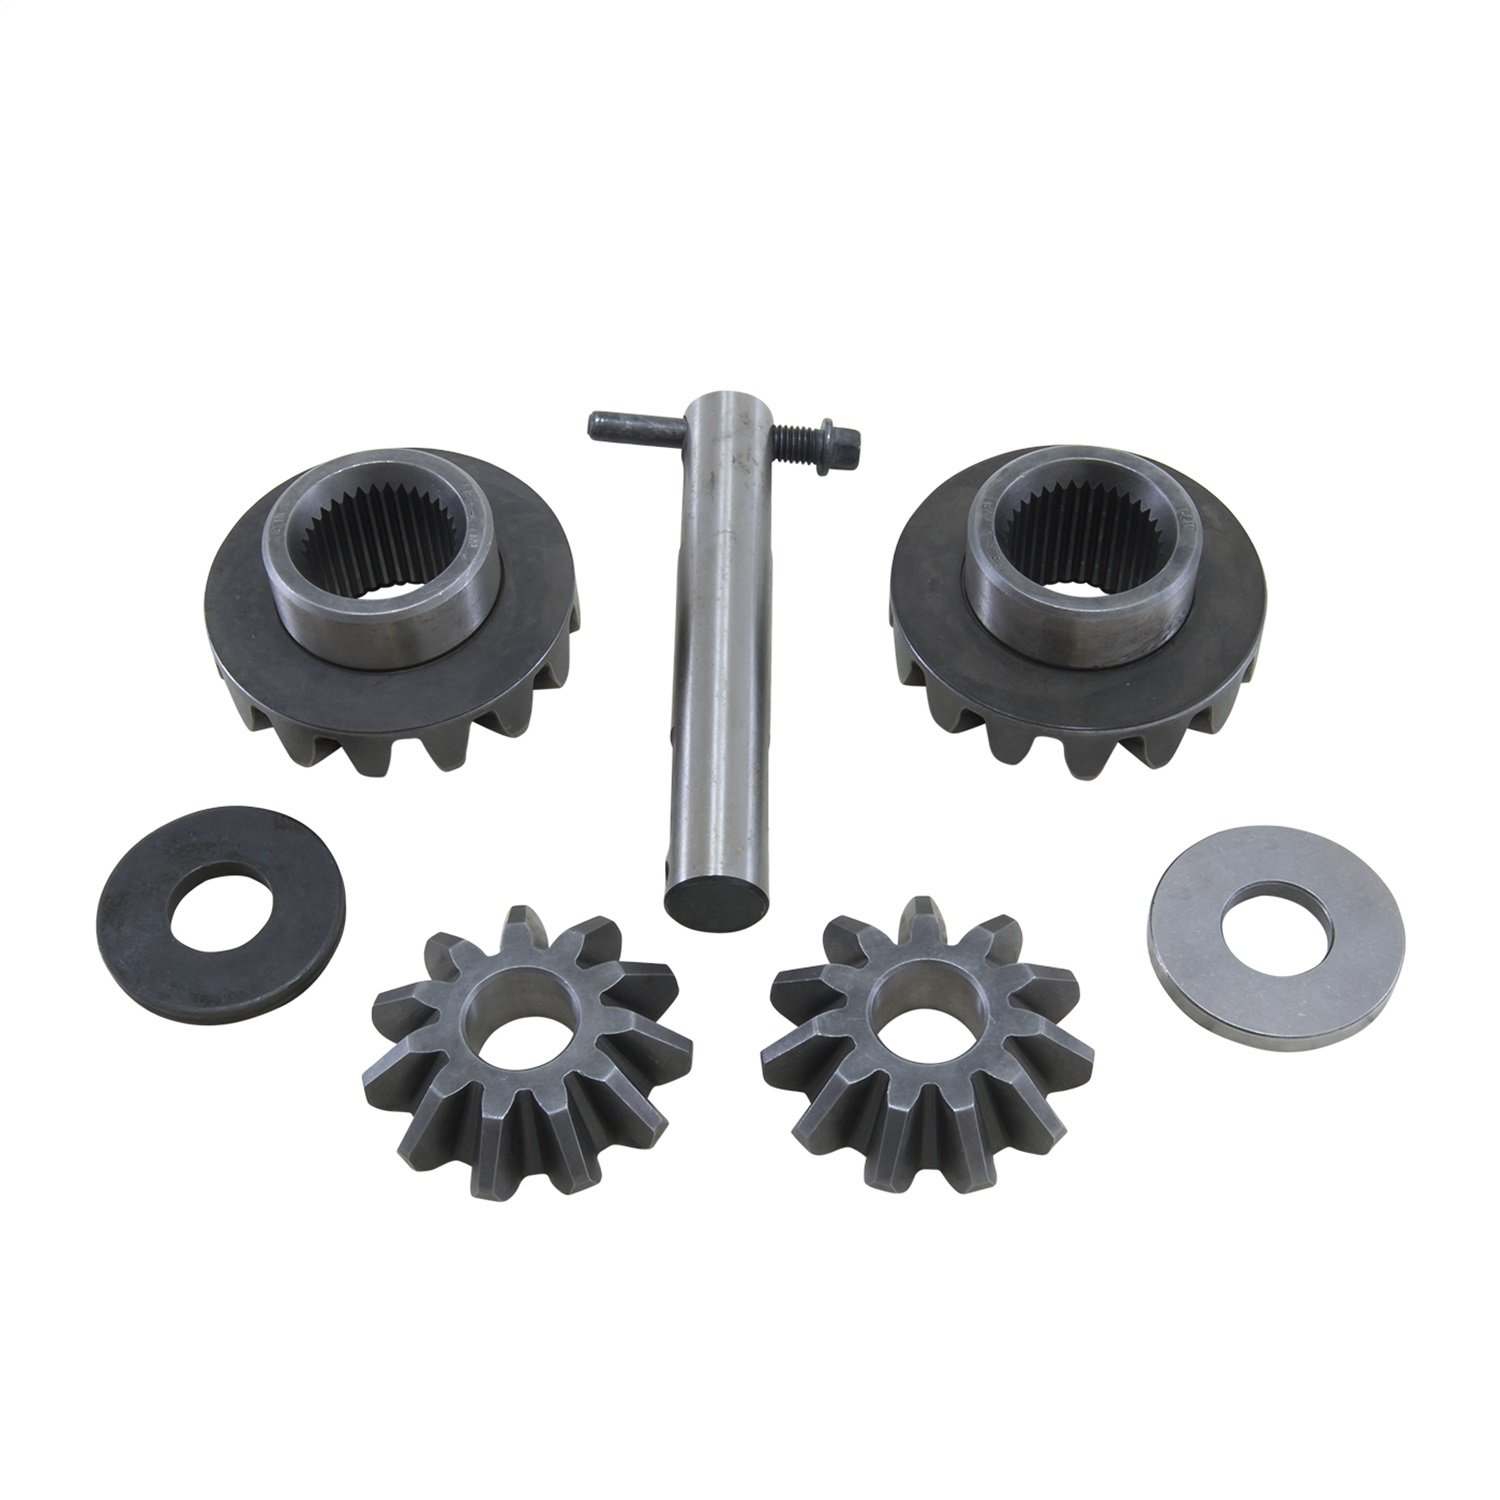 Standard Open Spider Gear Kit for GM 9.25//9.5 IFS Differential with 33-Spline Axle YPKGM9.5-S-33 Yukon Gear /& Axle